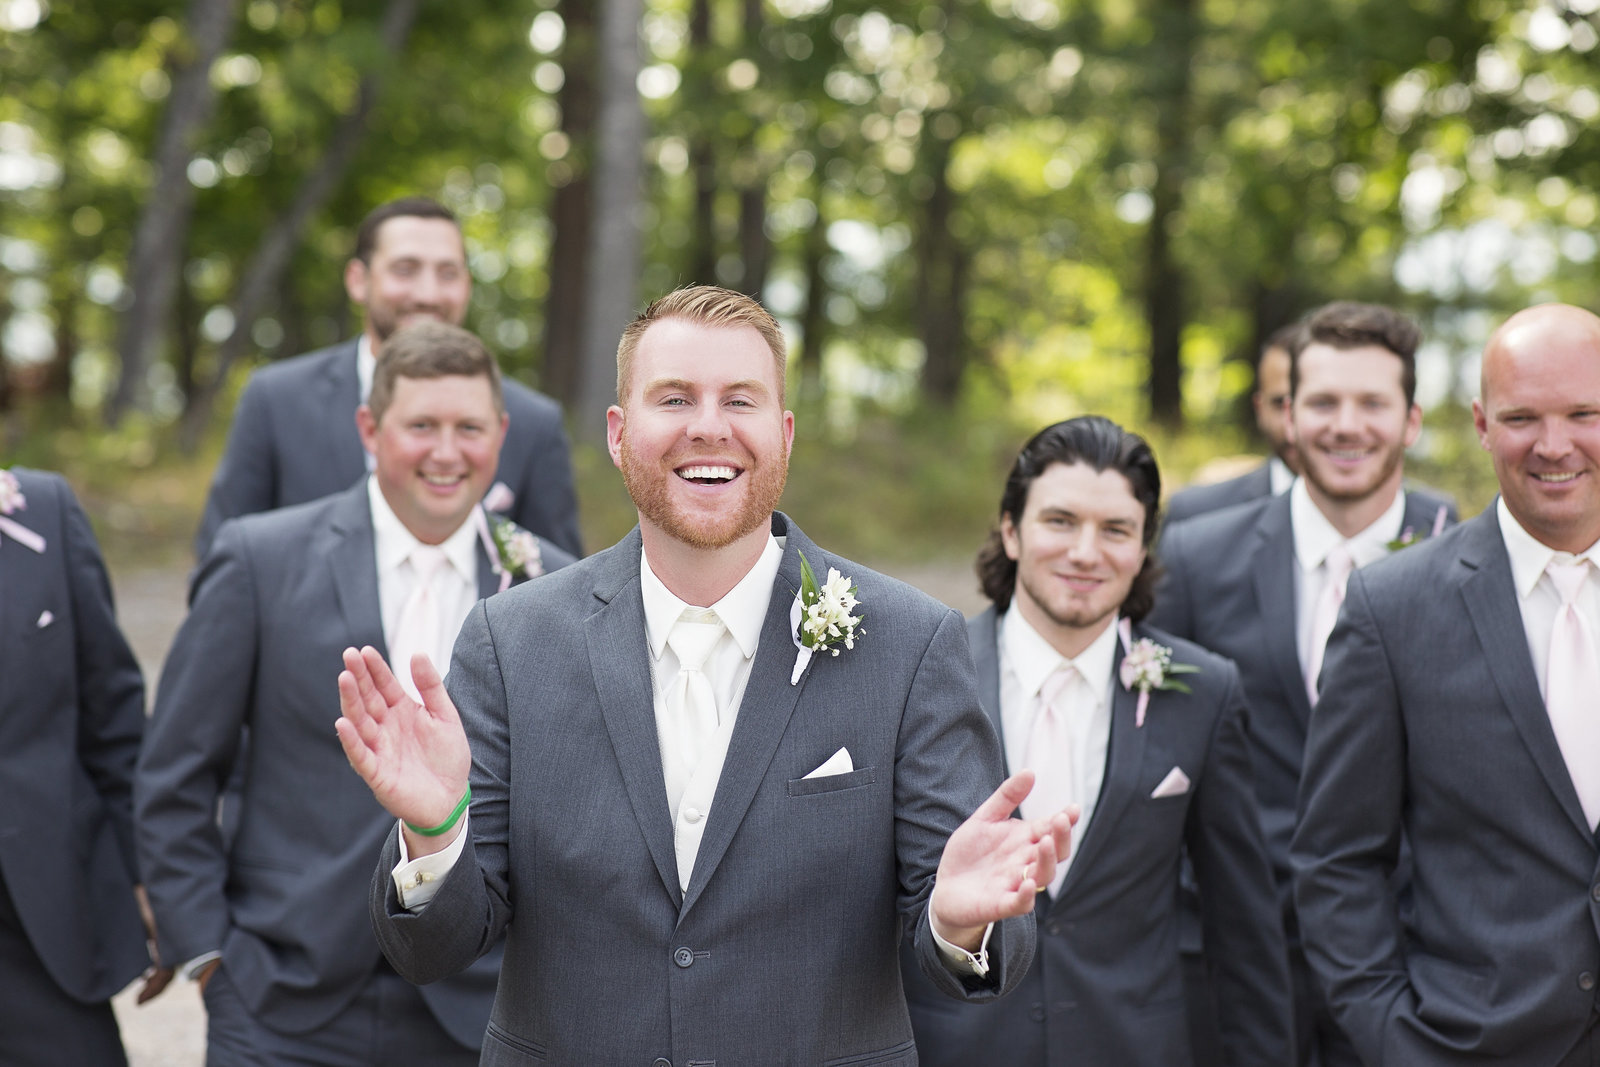 Upper Michigan and Wisconsin Photographer specializing in Engagement, Wedding, Senior and Family Portraits - Groomsmen Inspiration